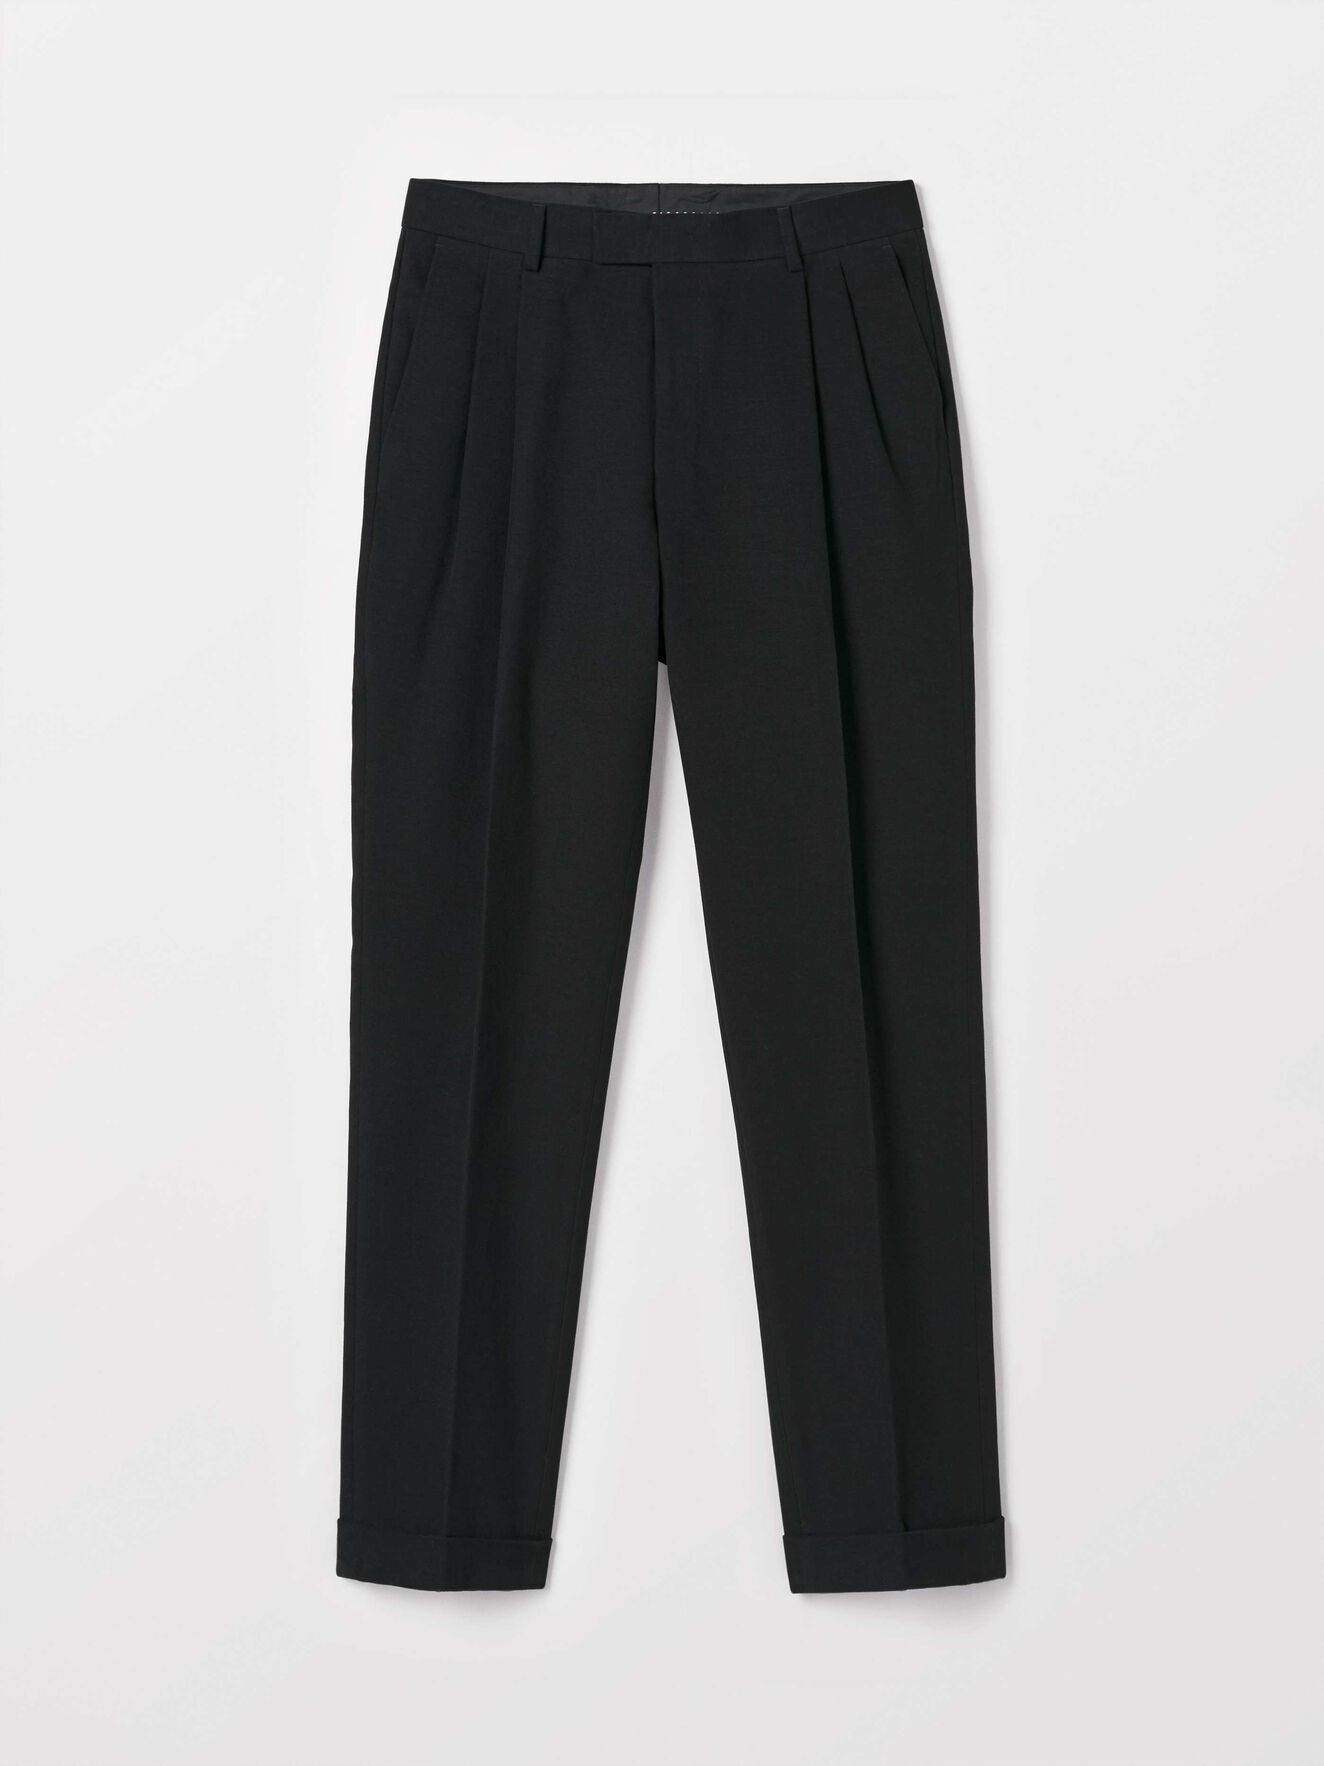 Tivolo Trousers in Black from Tiger of Sweden